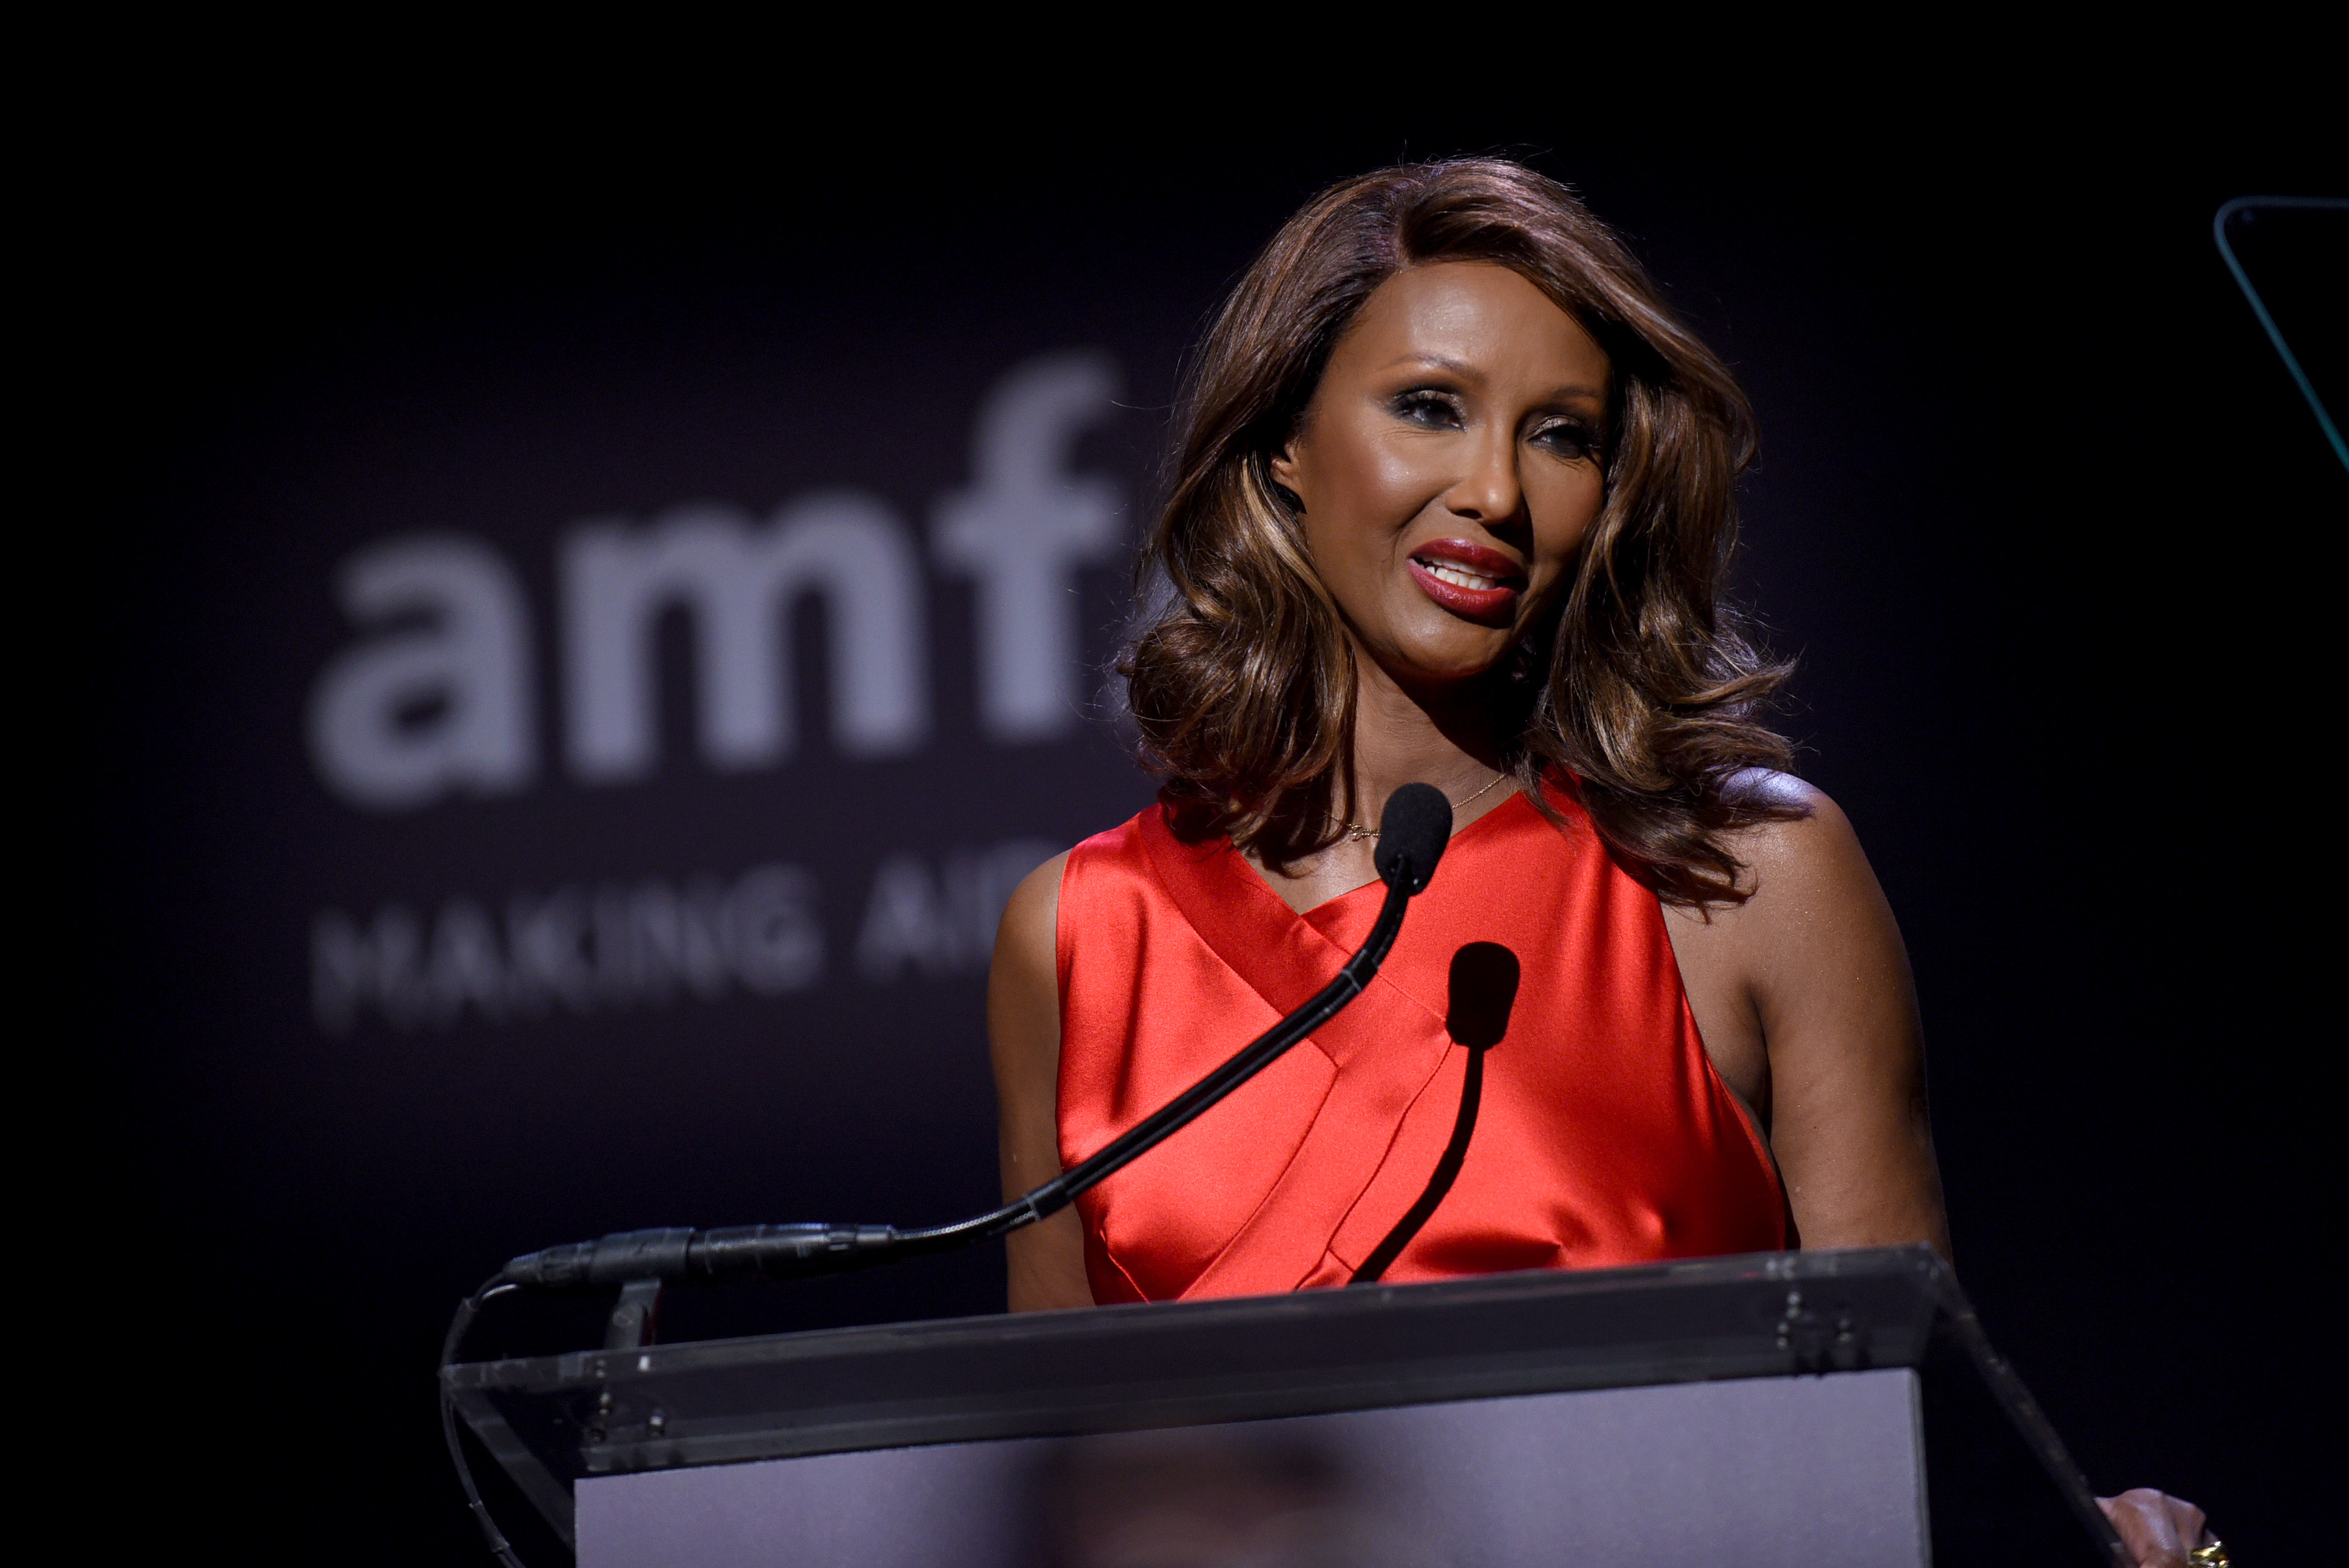 NEW YORK, NY - FEBRUARY 08: Model Iman speaks onstage as Moet & Chandon Toasts to the amfAR New York Gala At Cipriani Wall Street at Cipriani Wall Street on February 8, 2017 in New York City.  (Photo by Bryan Bedder/Getty Images for Moet & Chandon)